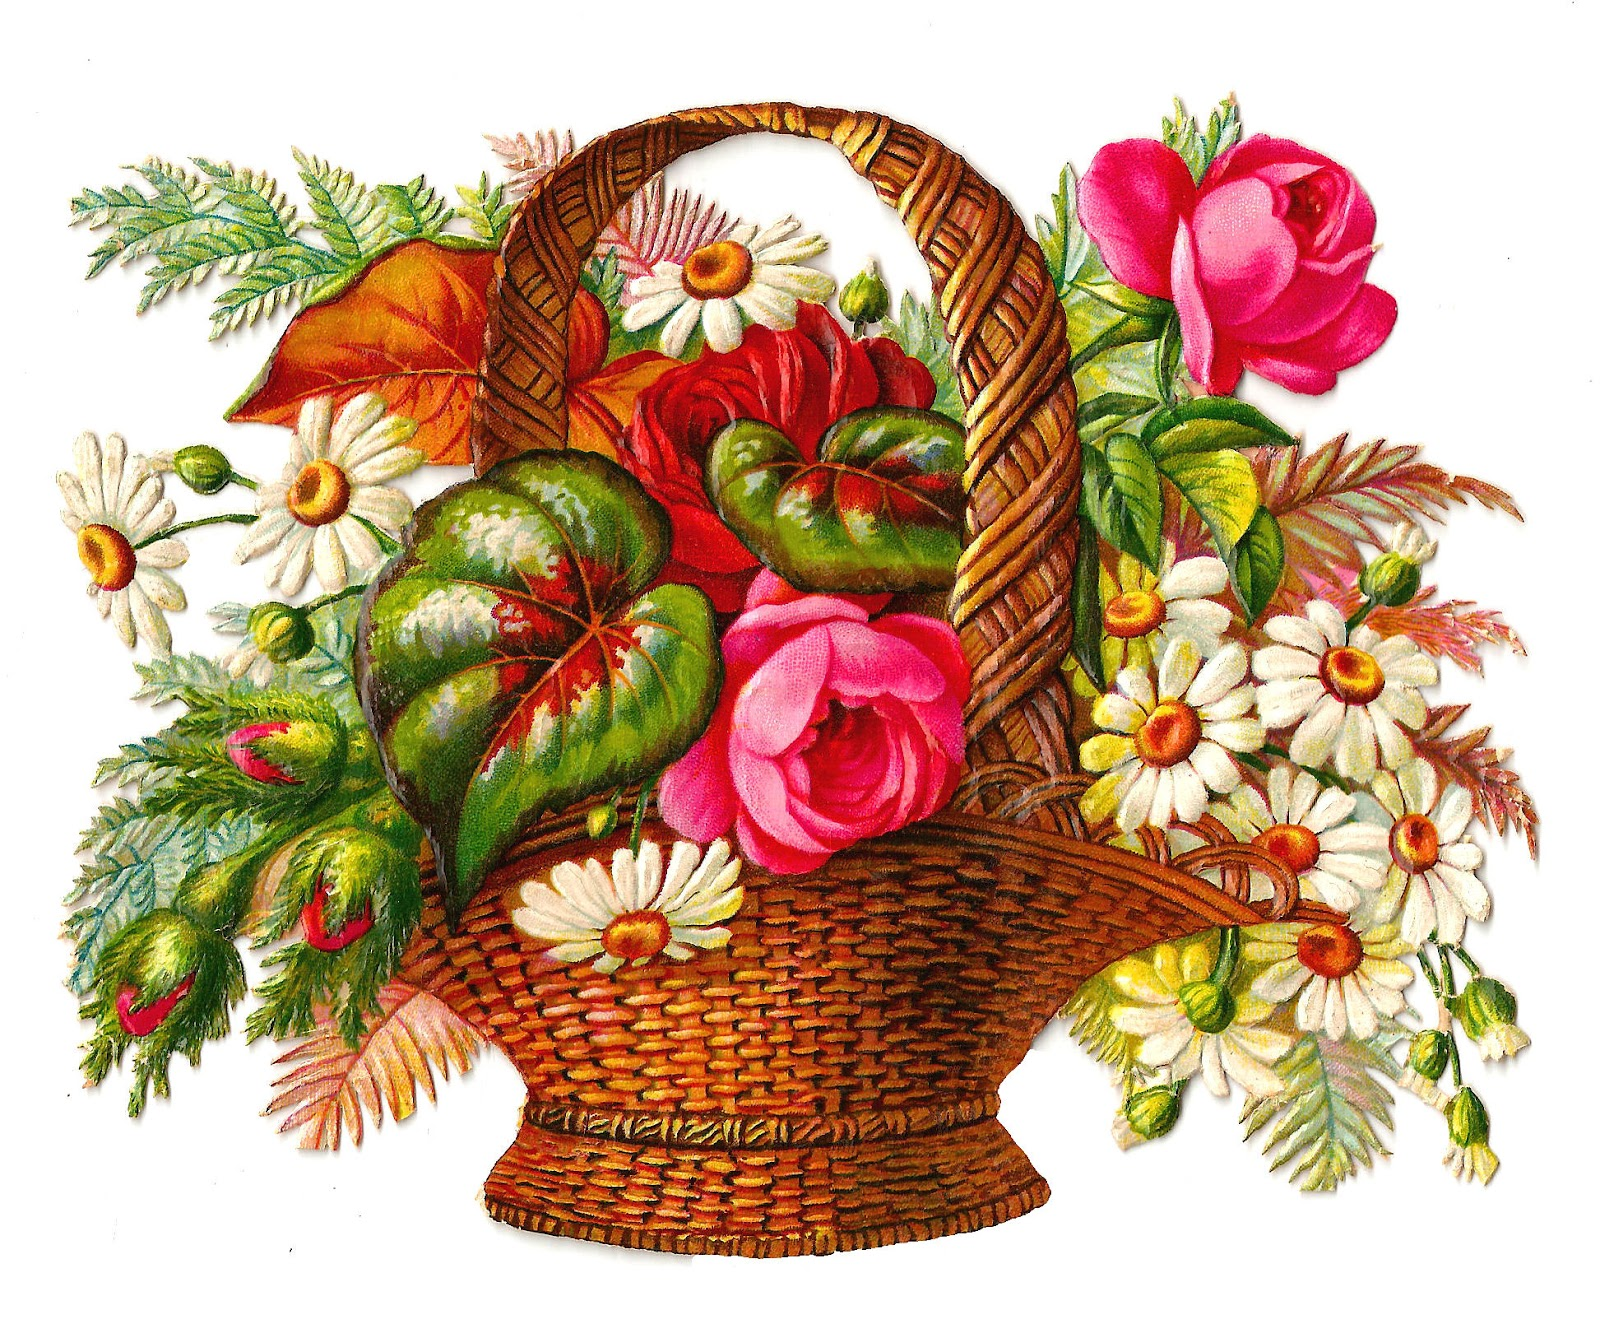 Flower Basket Clipart - Clipart Kid